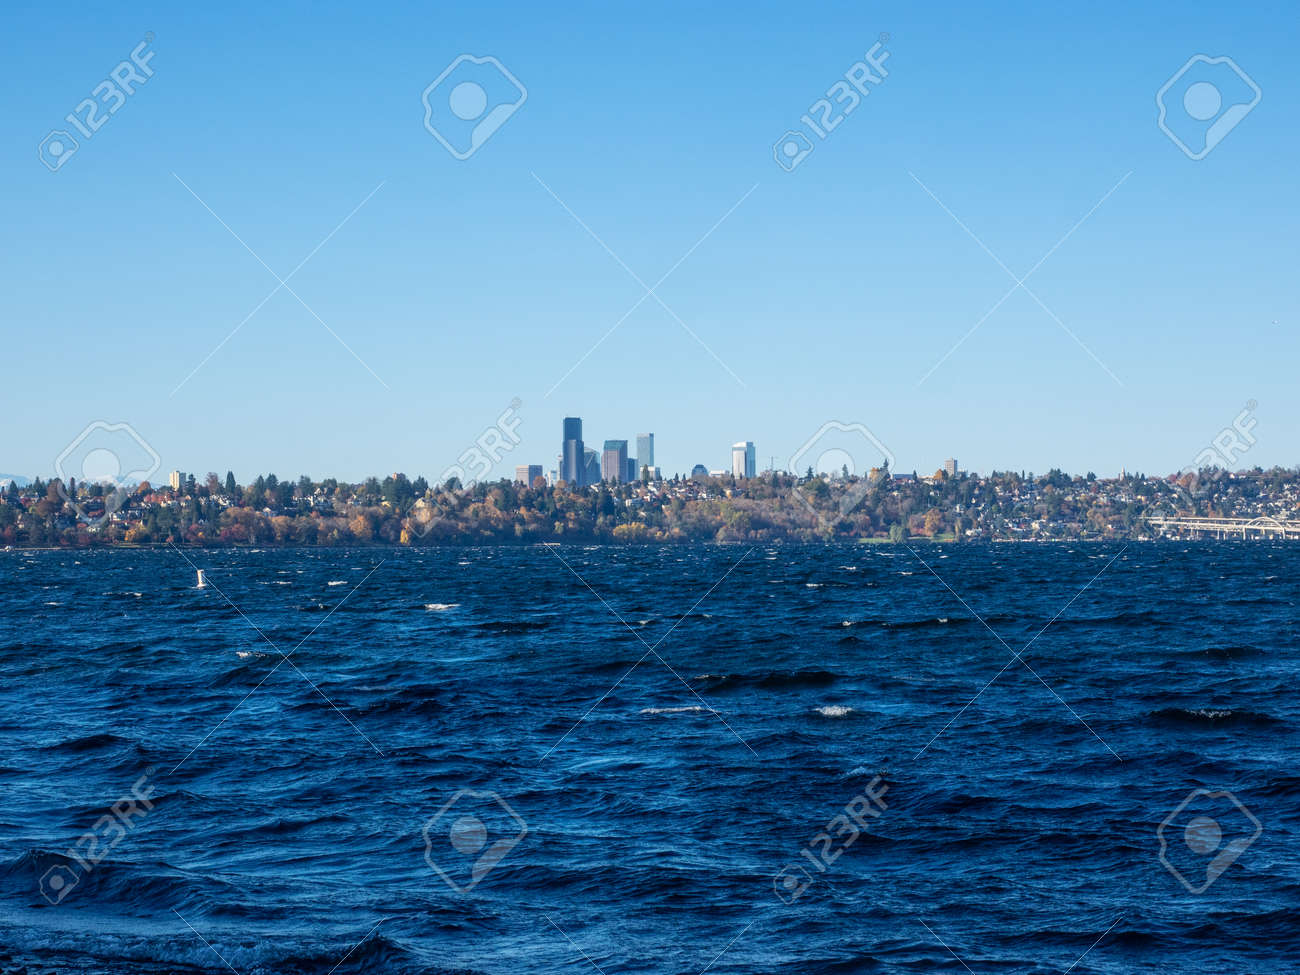 Seward Park is a municipal park in Seattle, Washington, United States. Located in the city neighborhood of the same name, it covers 300 acres (120 ha; 0.47 sq mi). The park occupies all of Bailey Peninsula, a forested peninsula that juts into Lake Washington. - 161487345